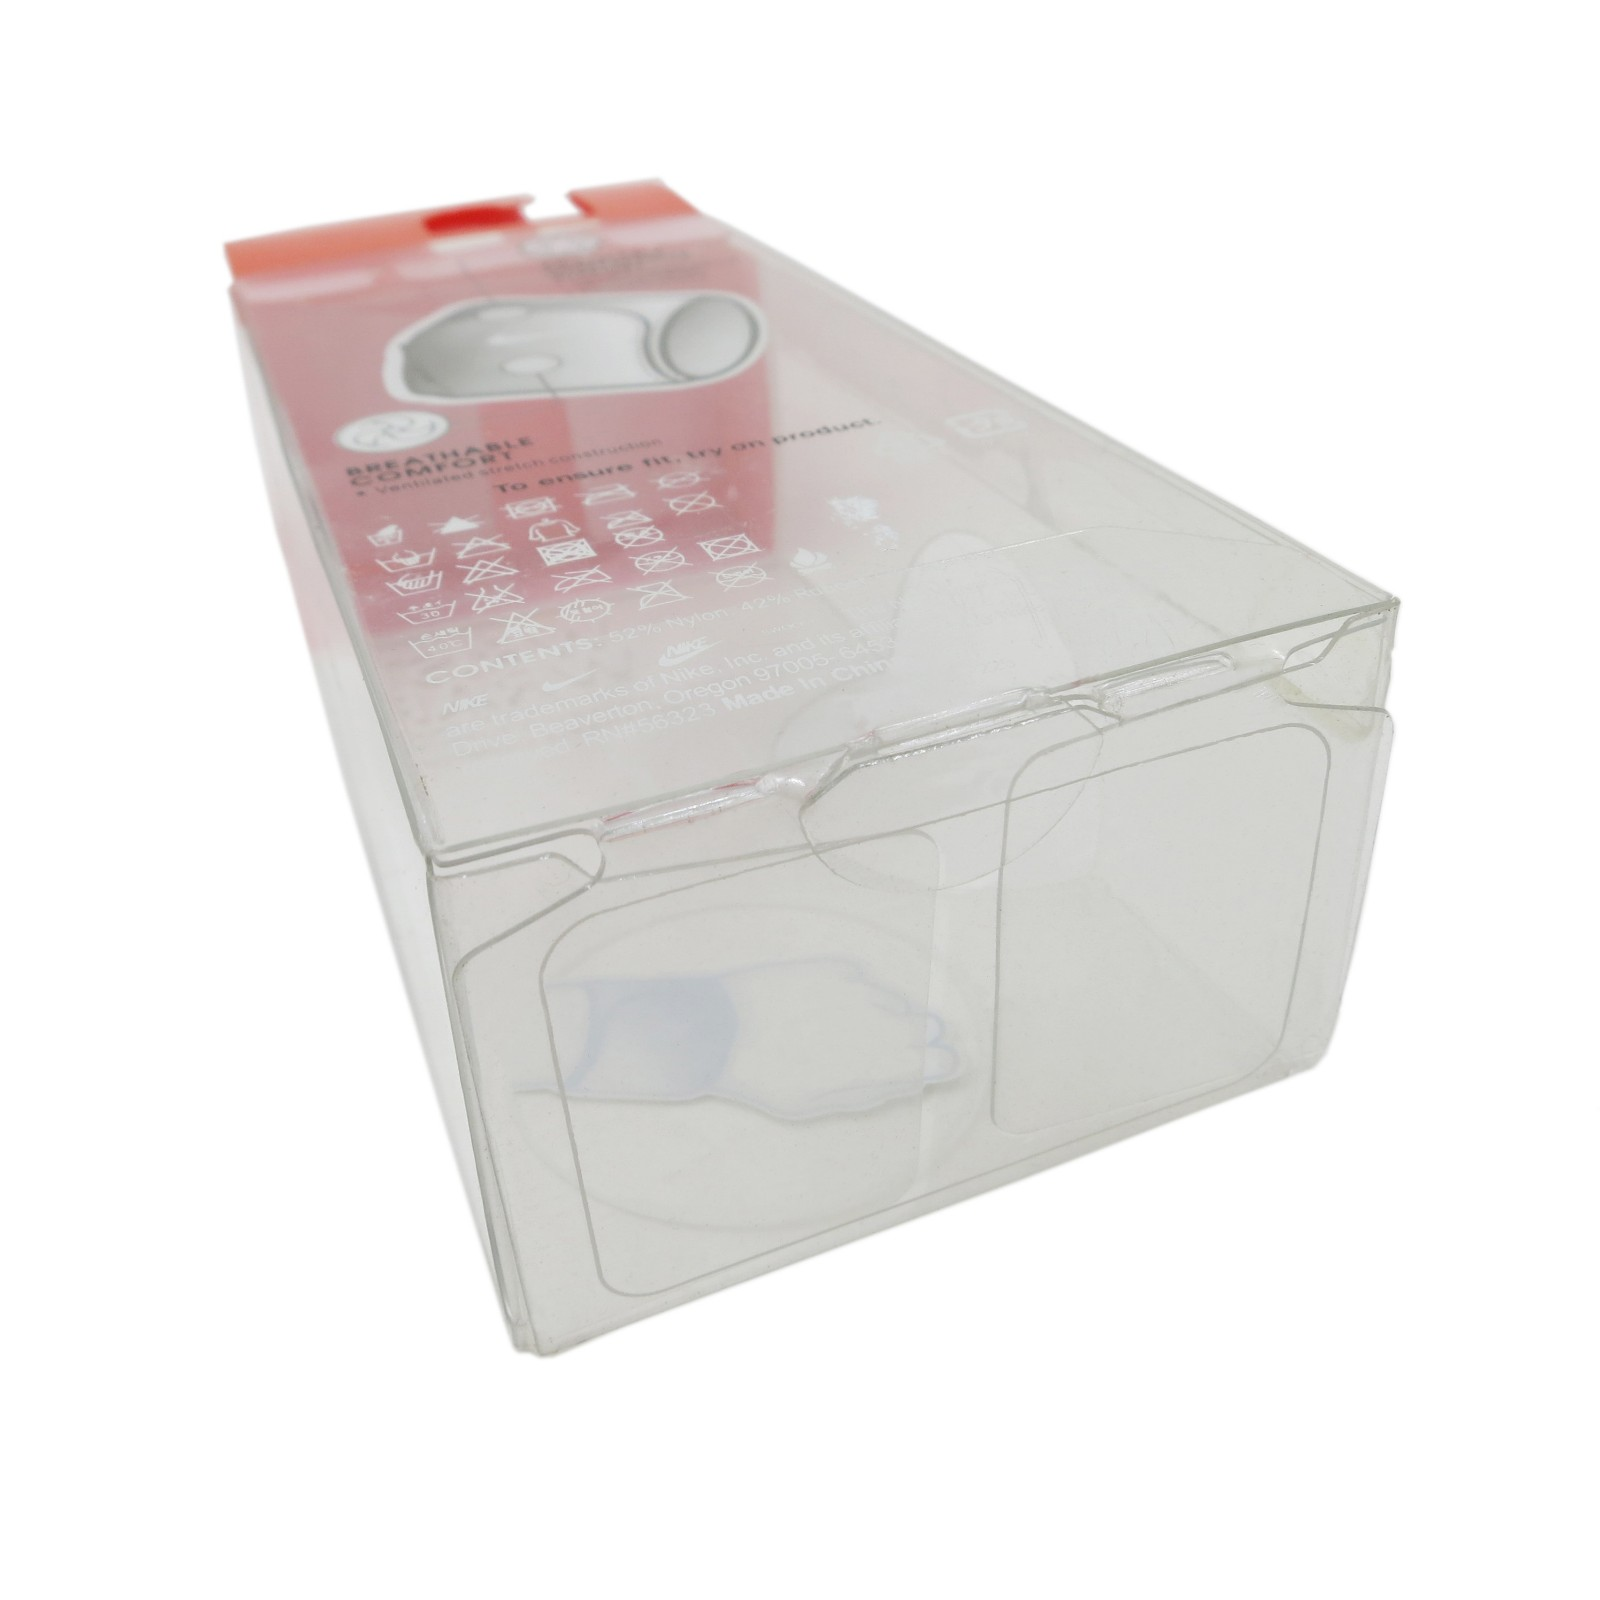 Yijianxing Plastic Products reasonable clear plastic box manufacturers bulk production for gifts-6